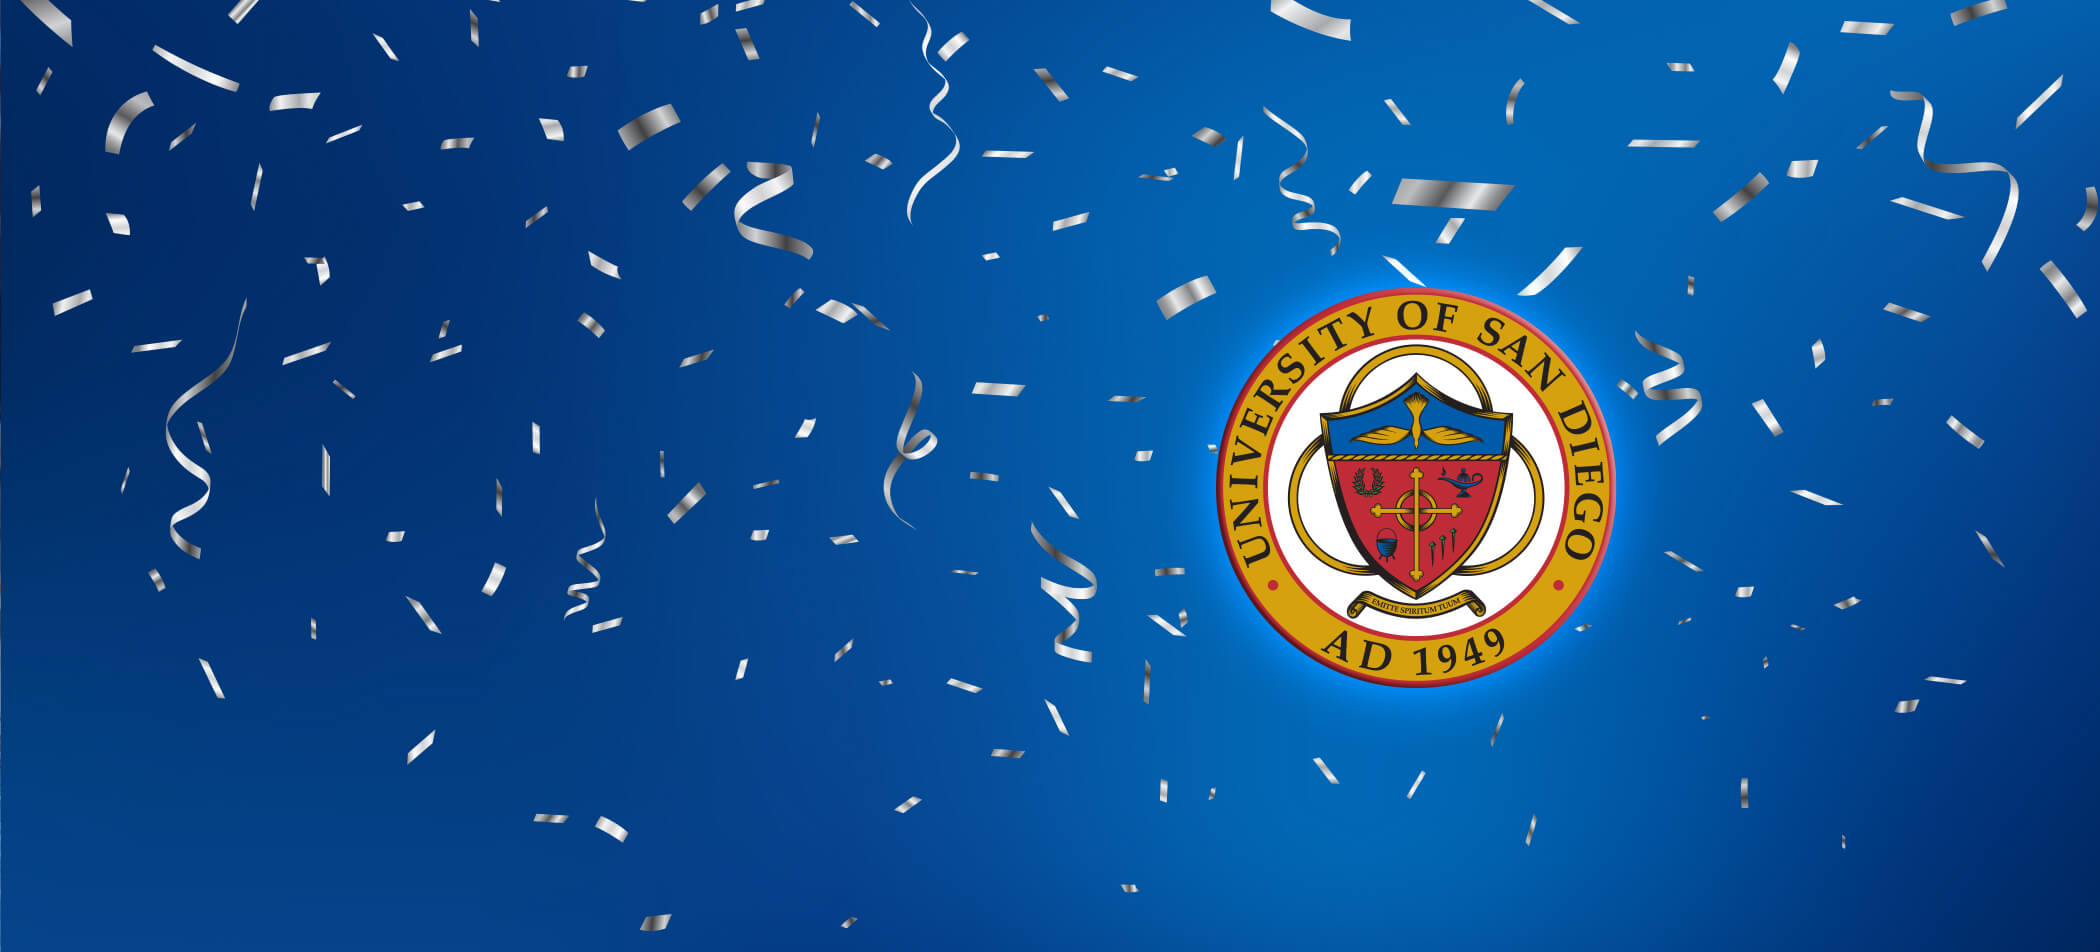 University logo with silver streamers